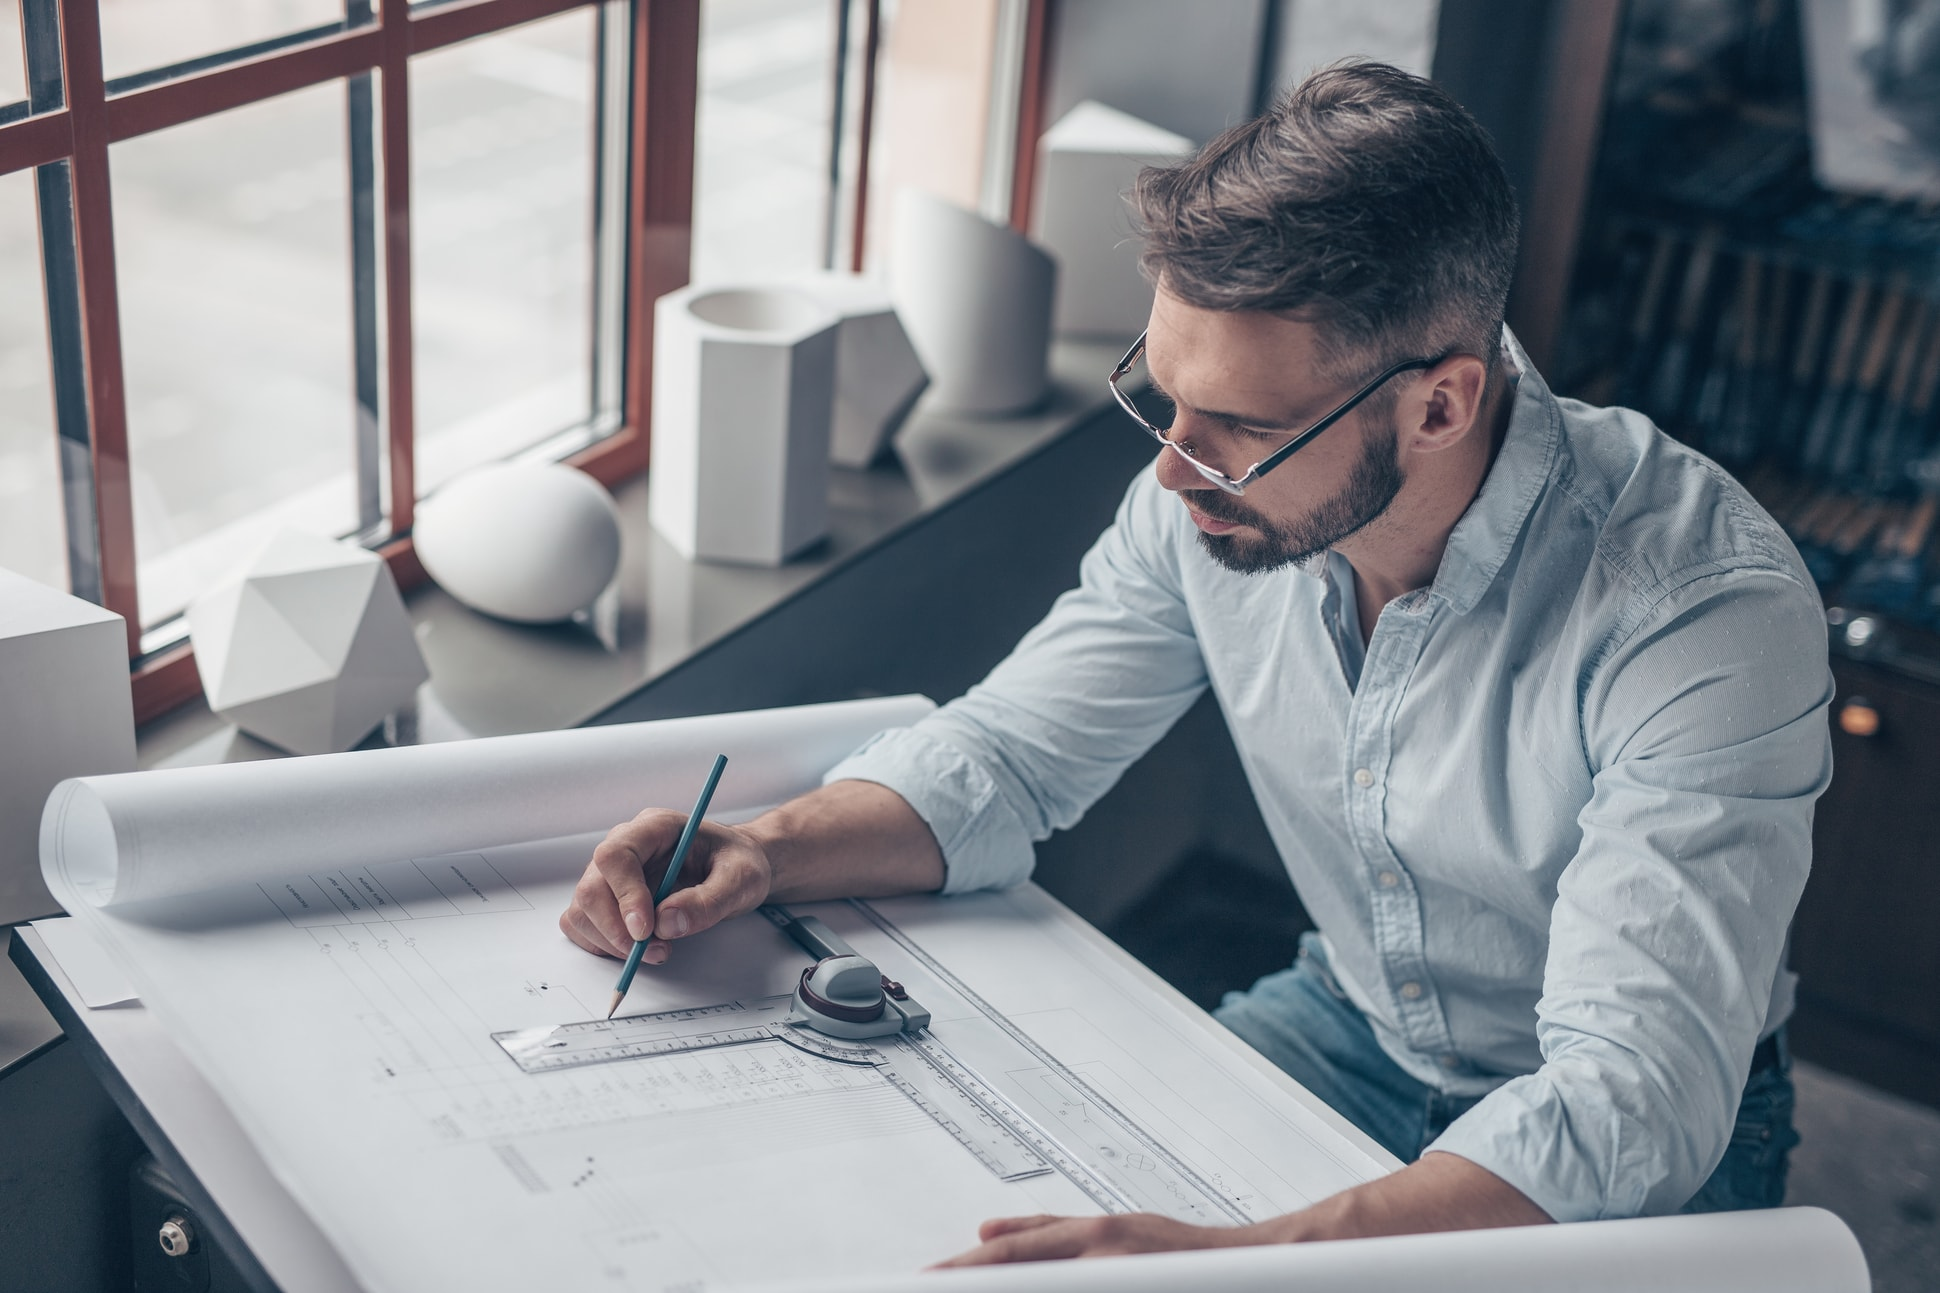 Is Architecture a Good Career Option? Things To Know Before Selecting Architecture As Major